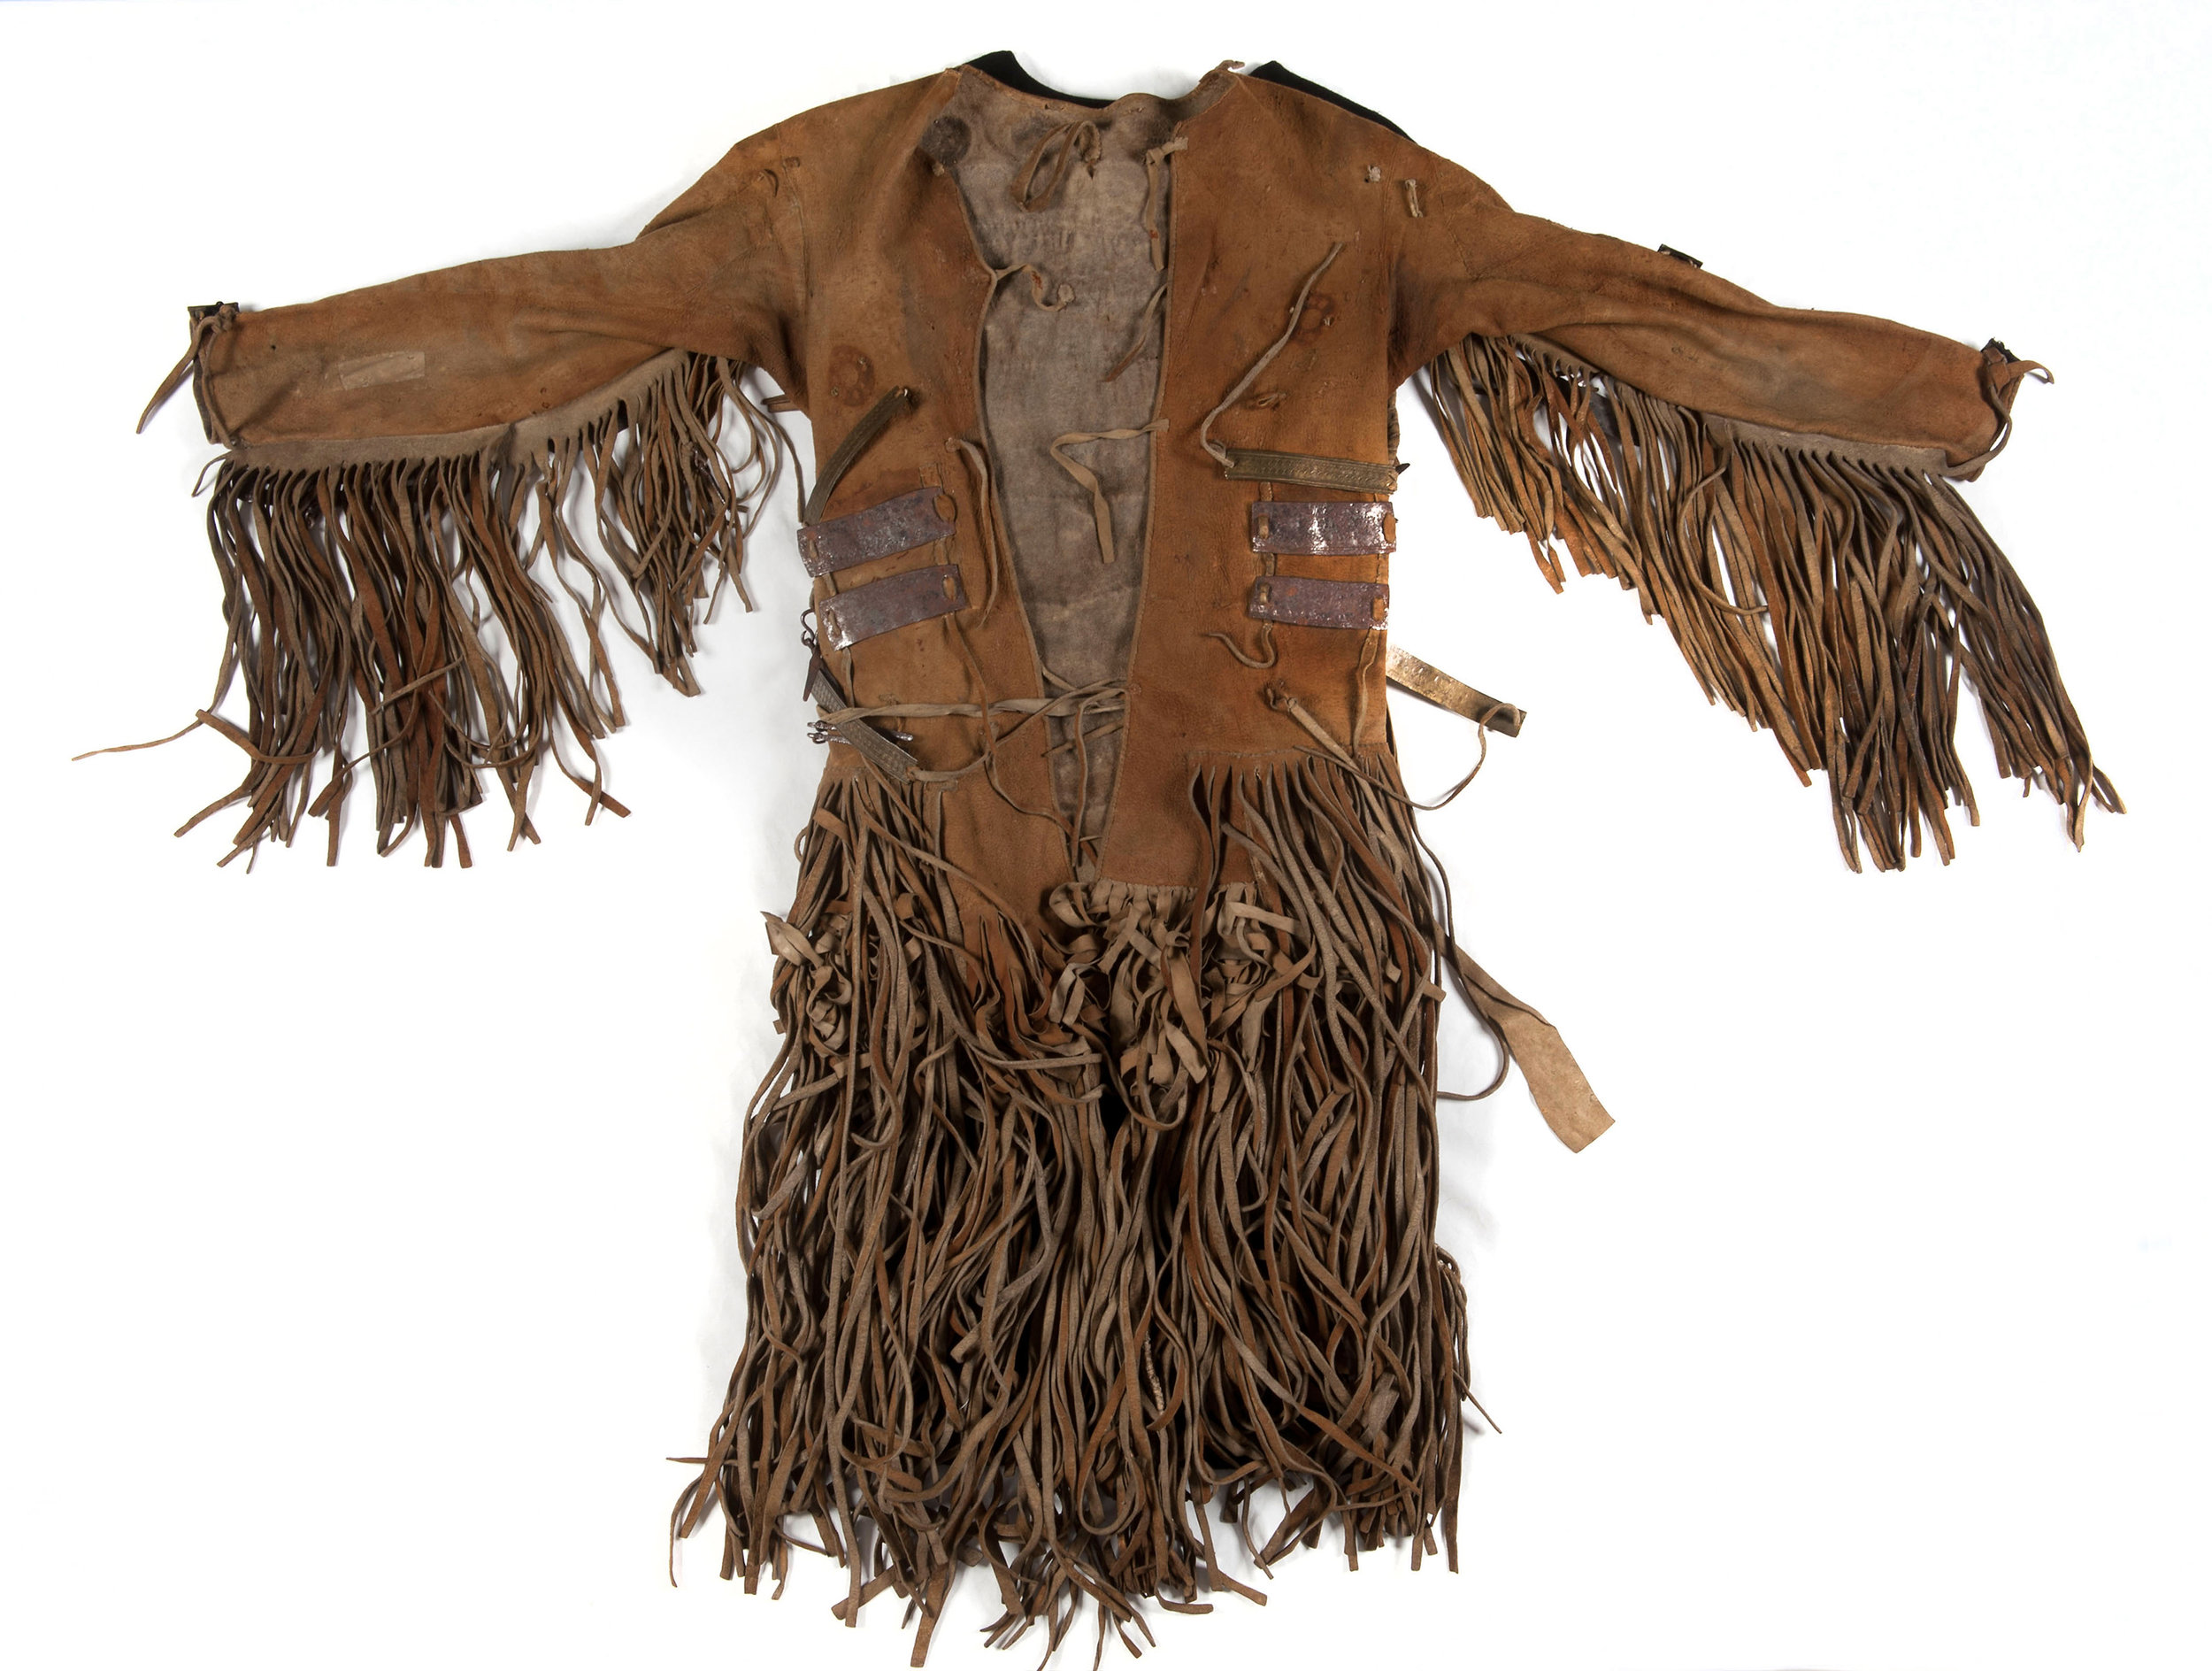 Jacket of a shaman; leather, iron, tendon wire; Northeast Siberia, 1800-1803. Collection National Museum of World Cultures Foundation